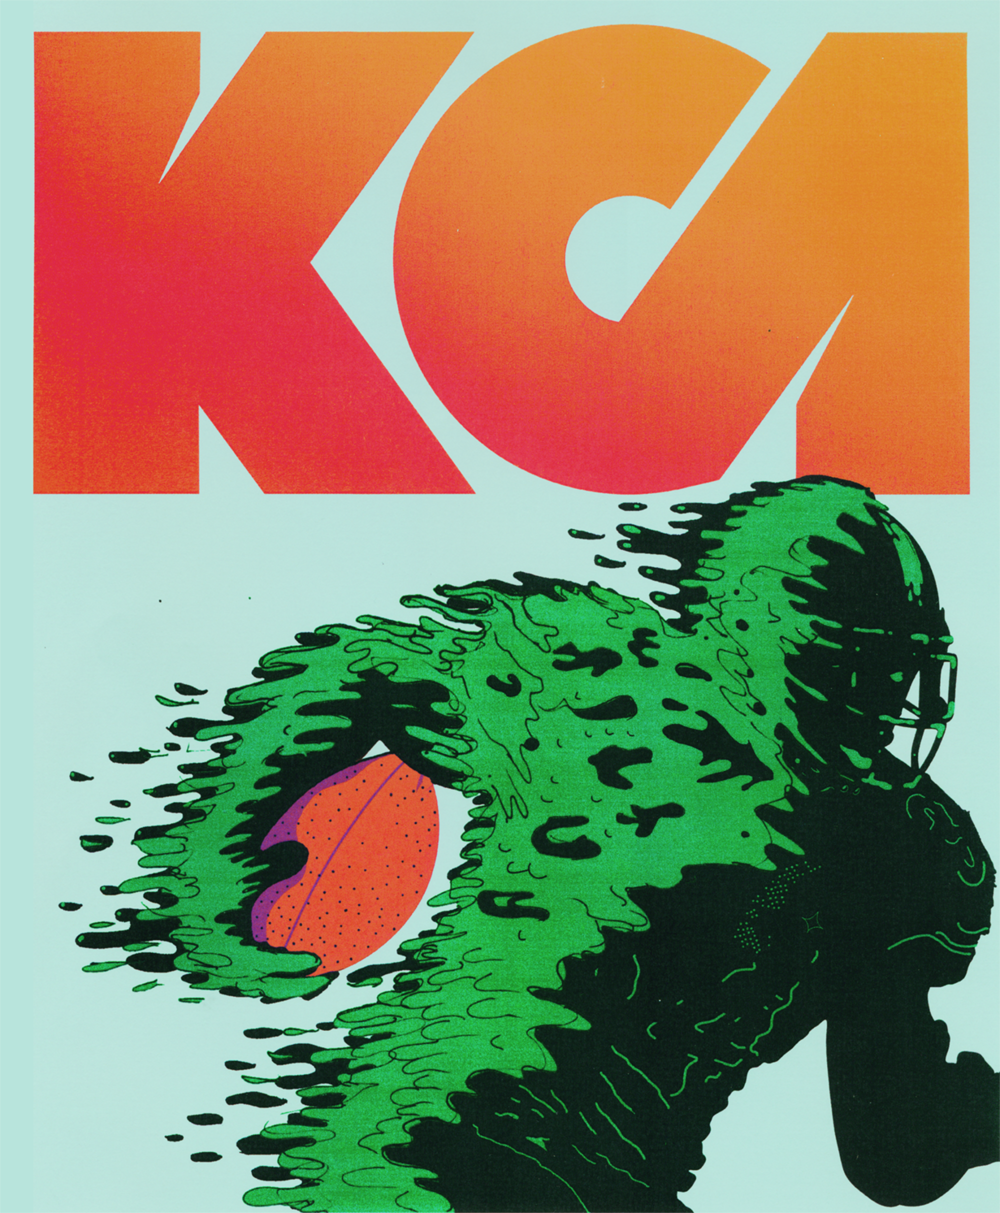 KCA_Football_02.png